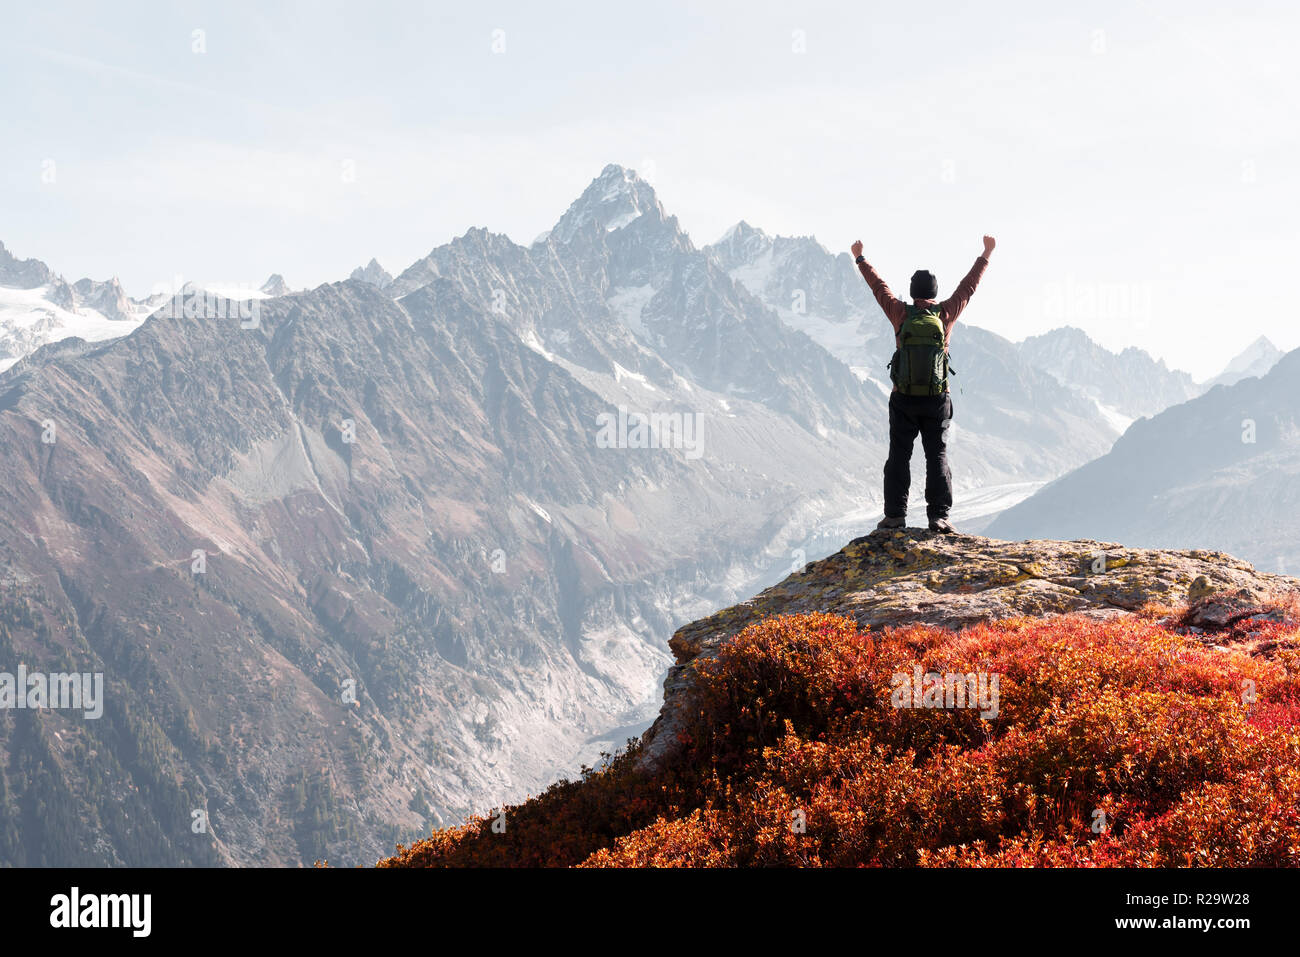 Amazing view on Monte Bianco mountains range with tourist on a foreground. Vallon de Berard Nature Preserve, Chamonix, Graian Alps. Stock Photo